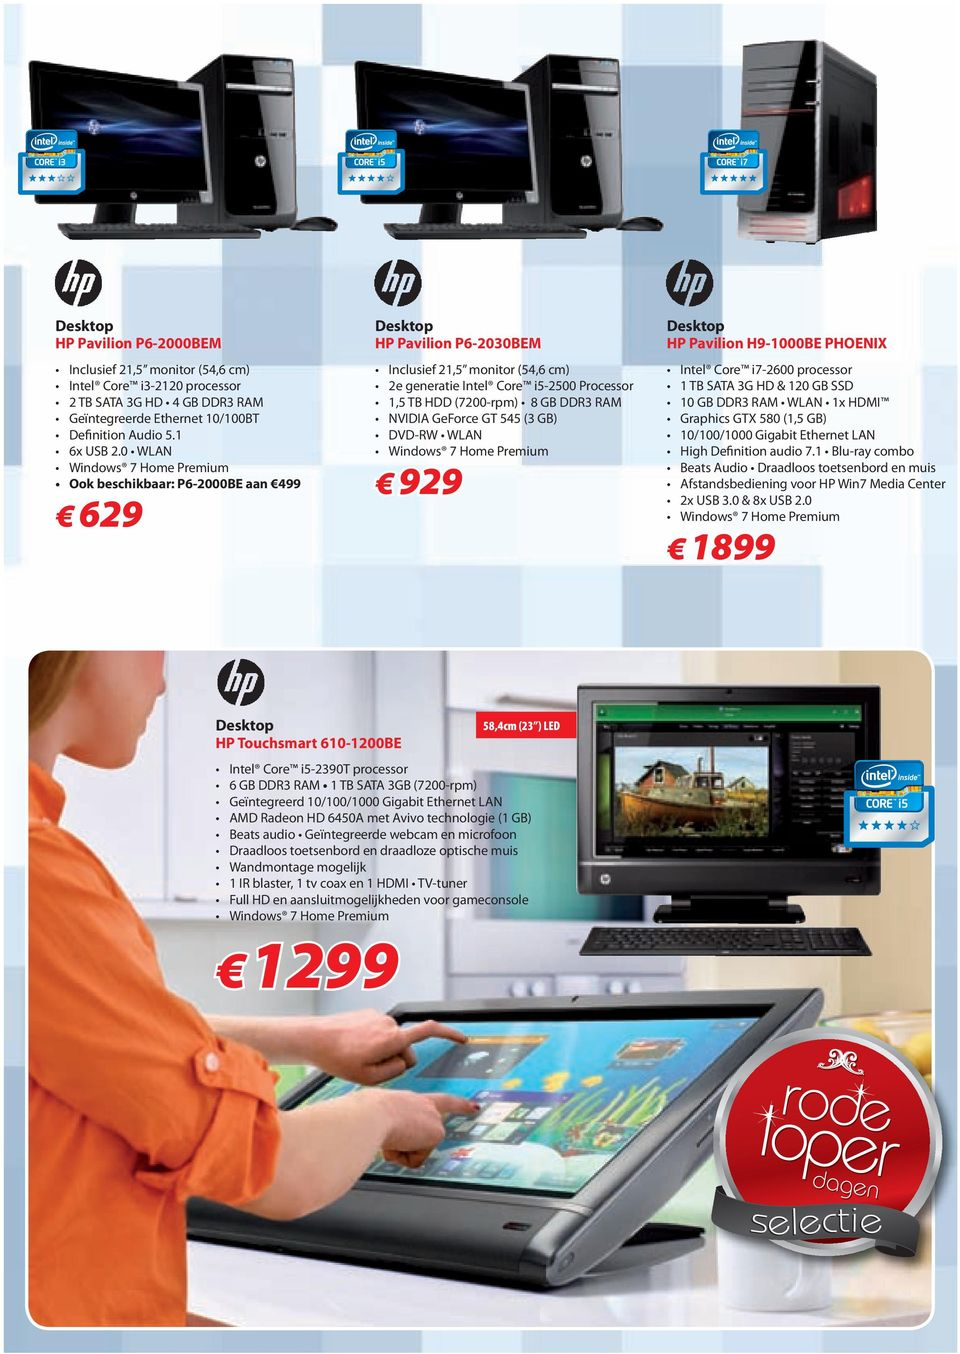 GB DDR3 RAM NVIDIA GeForce GT 545 (3 GB) DVD-RW WLAN Windows 7 Home Premium 929 Desktop HP Pavilion H9-1000BE PHOENIX Intel Core i7-2600 processor 1 TB SATA 3G HD & 120 GB SSD 10 GB DDR3 RAM WLAN 1x